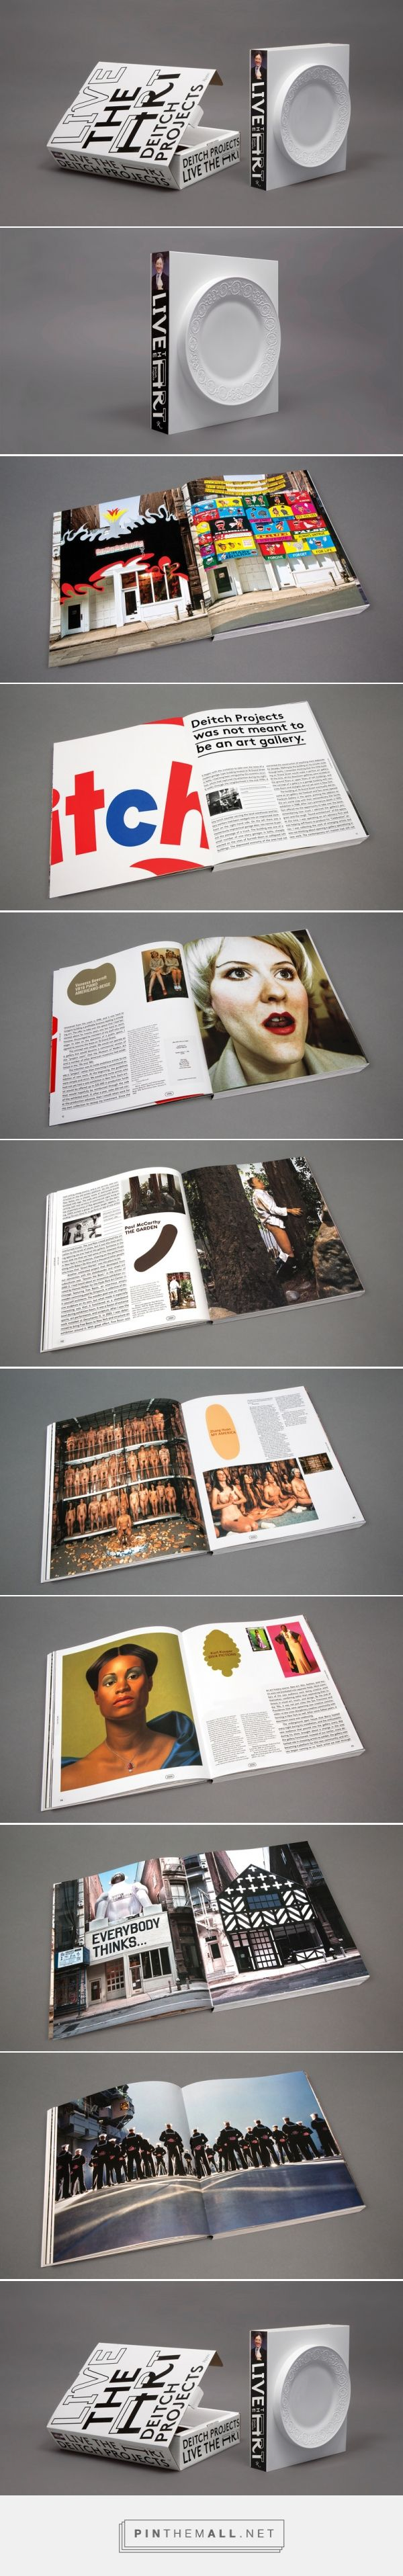 Deitch Book – Sagmeister & Walsh #poster #plakat #layout #graphicdesign #gestaltung #typography #color #illustration #design #collage #print #cover #magazine #book